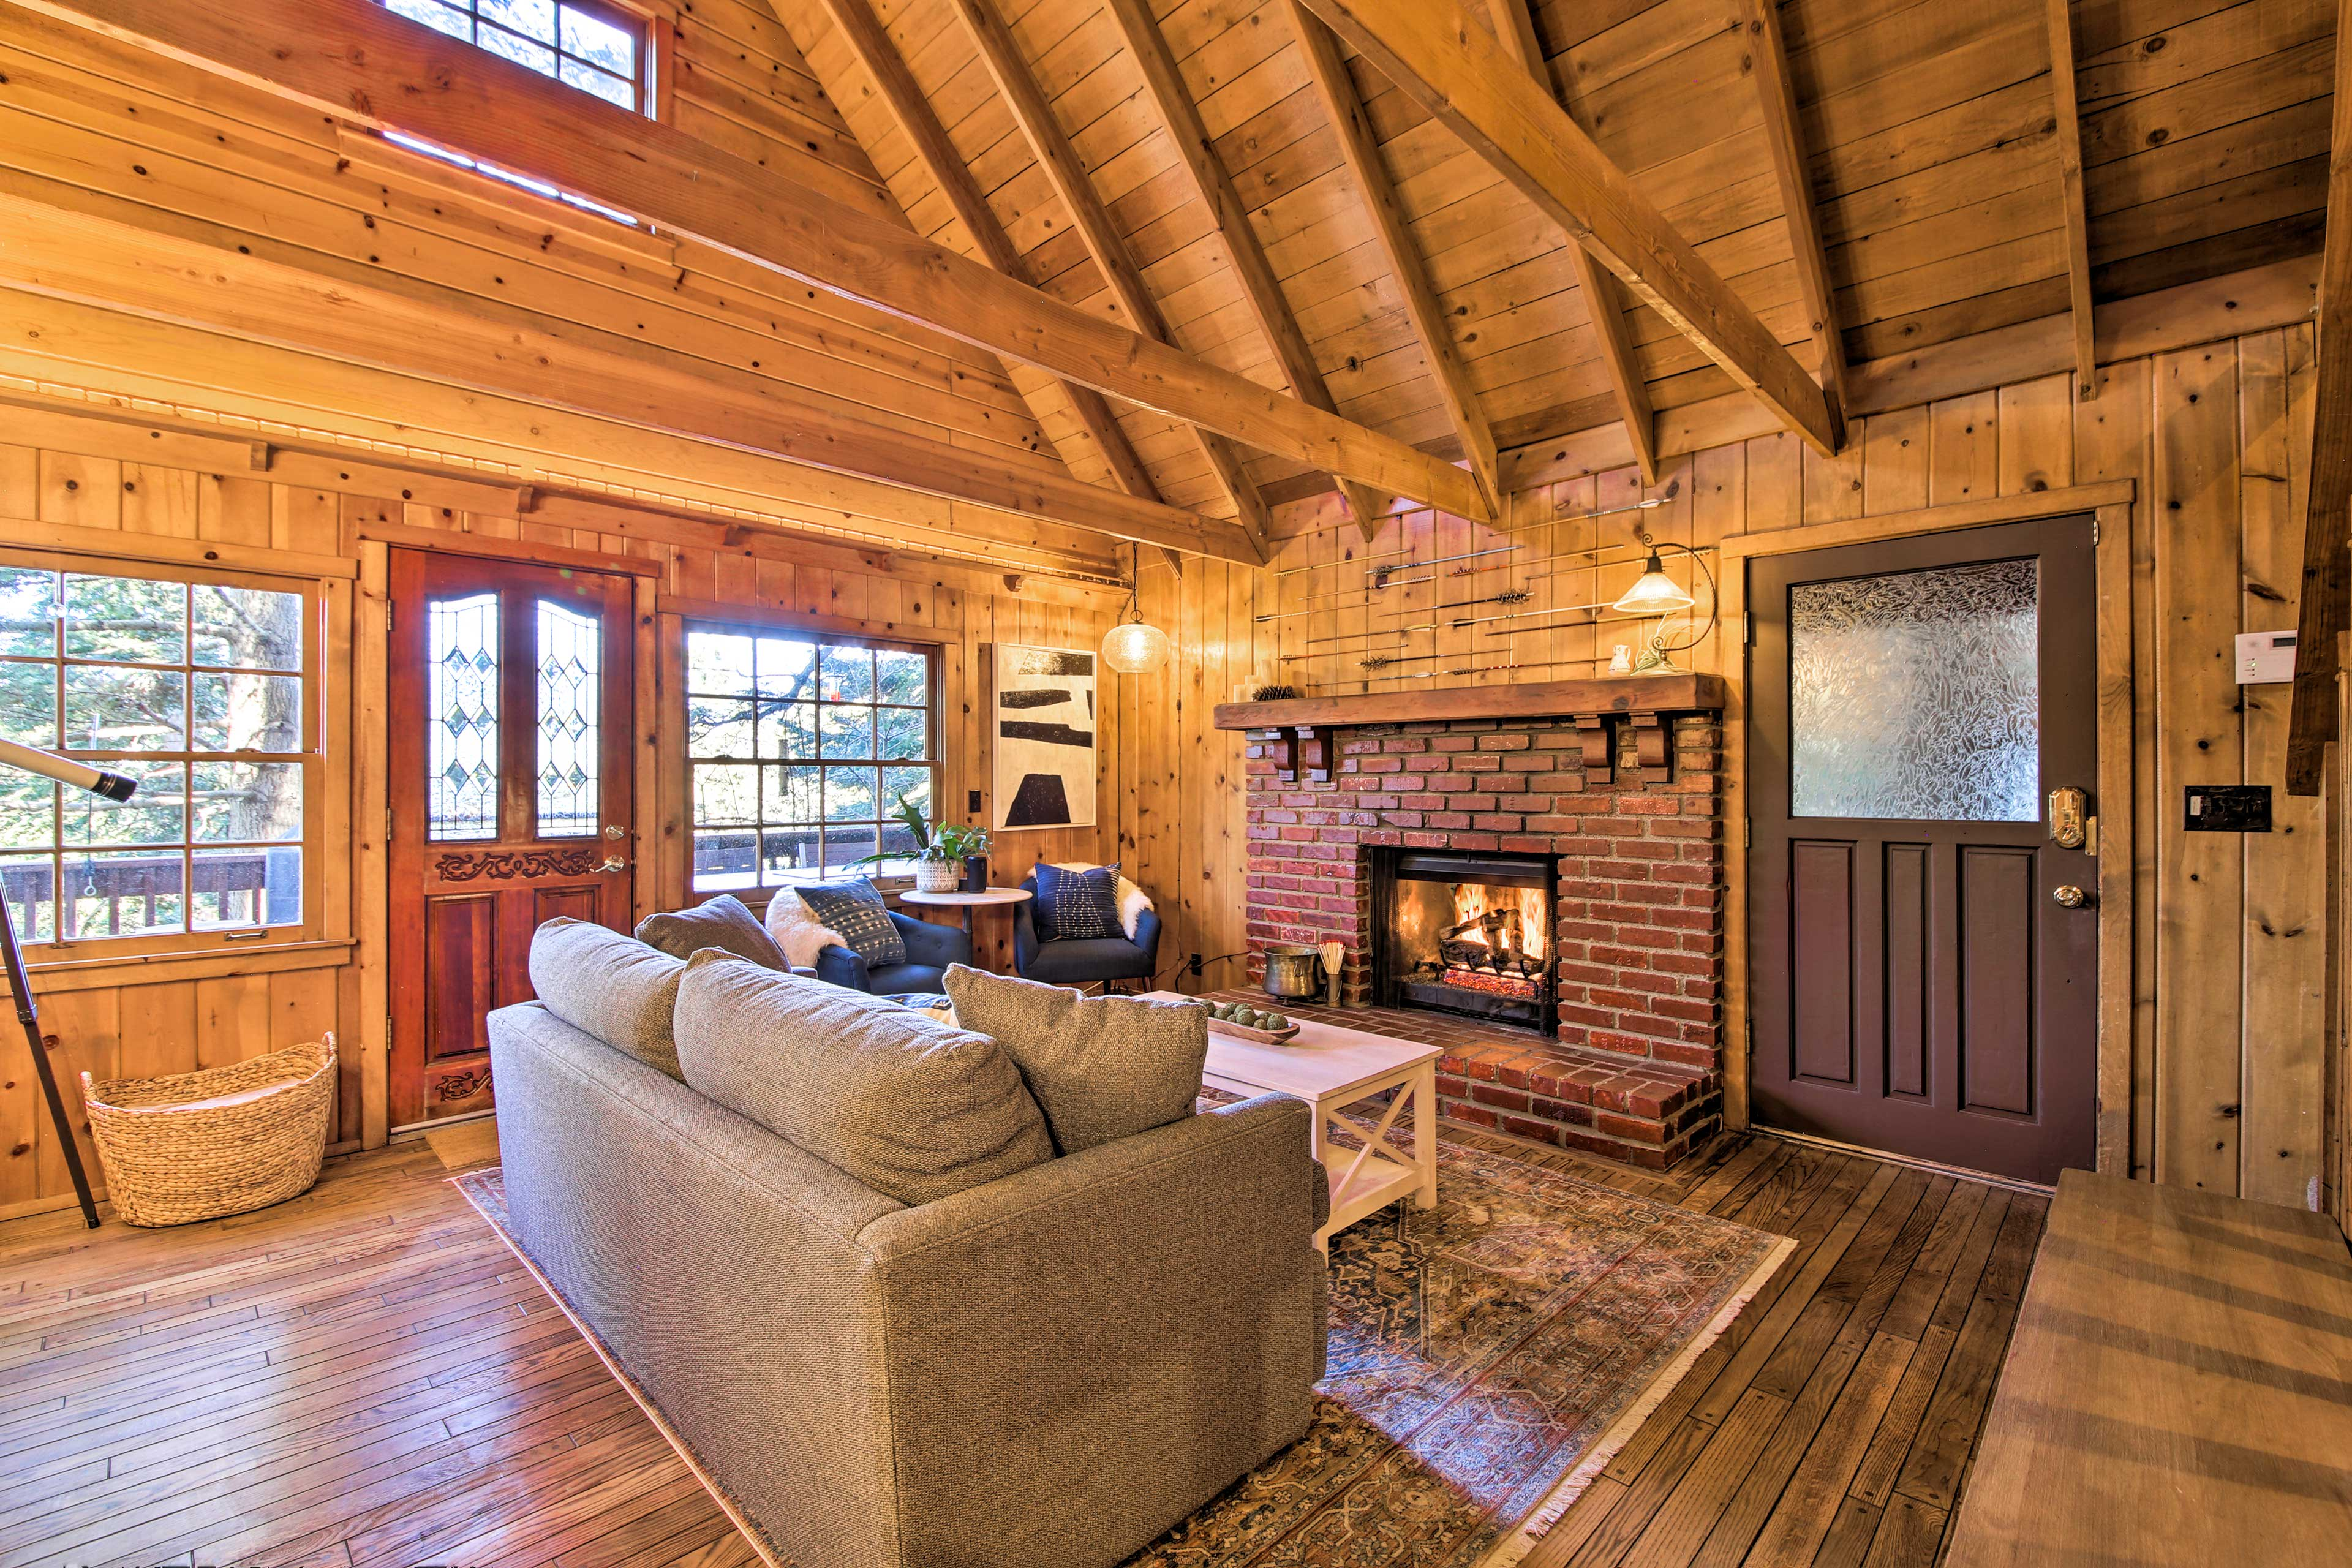 In your downtime, turn on the gas fireplace and relax with the family.